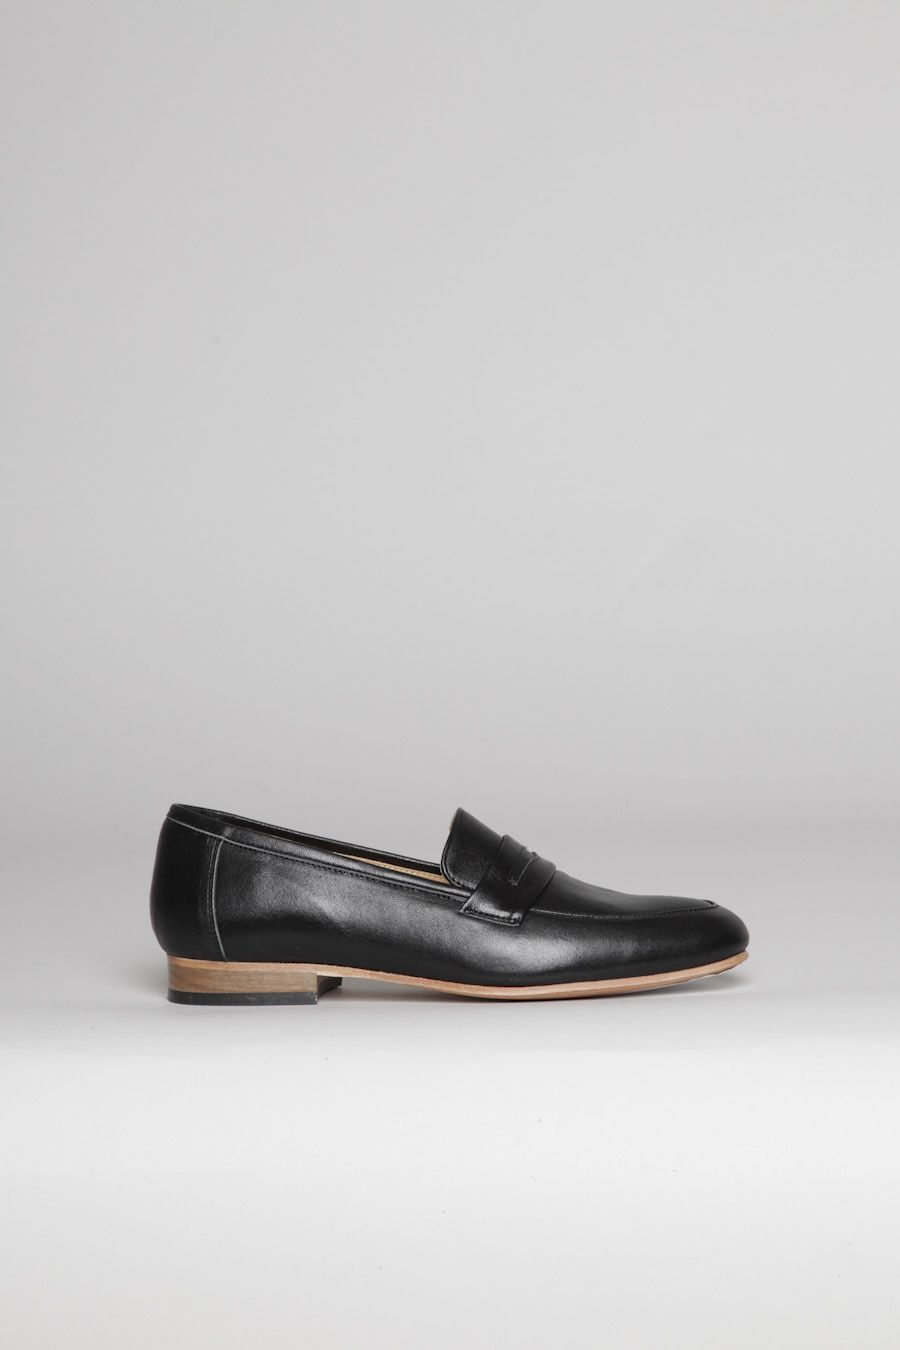 Dieppa Restrepo Penny Black 254 Fashion Shoes Penny Loafers Shoes [ 1350 x 900 Pixel ]